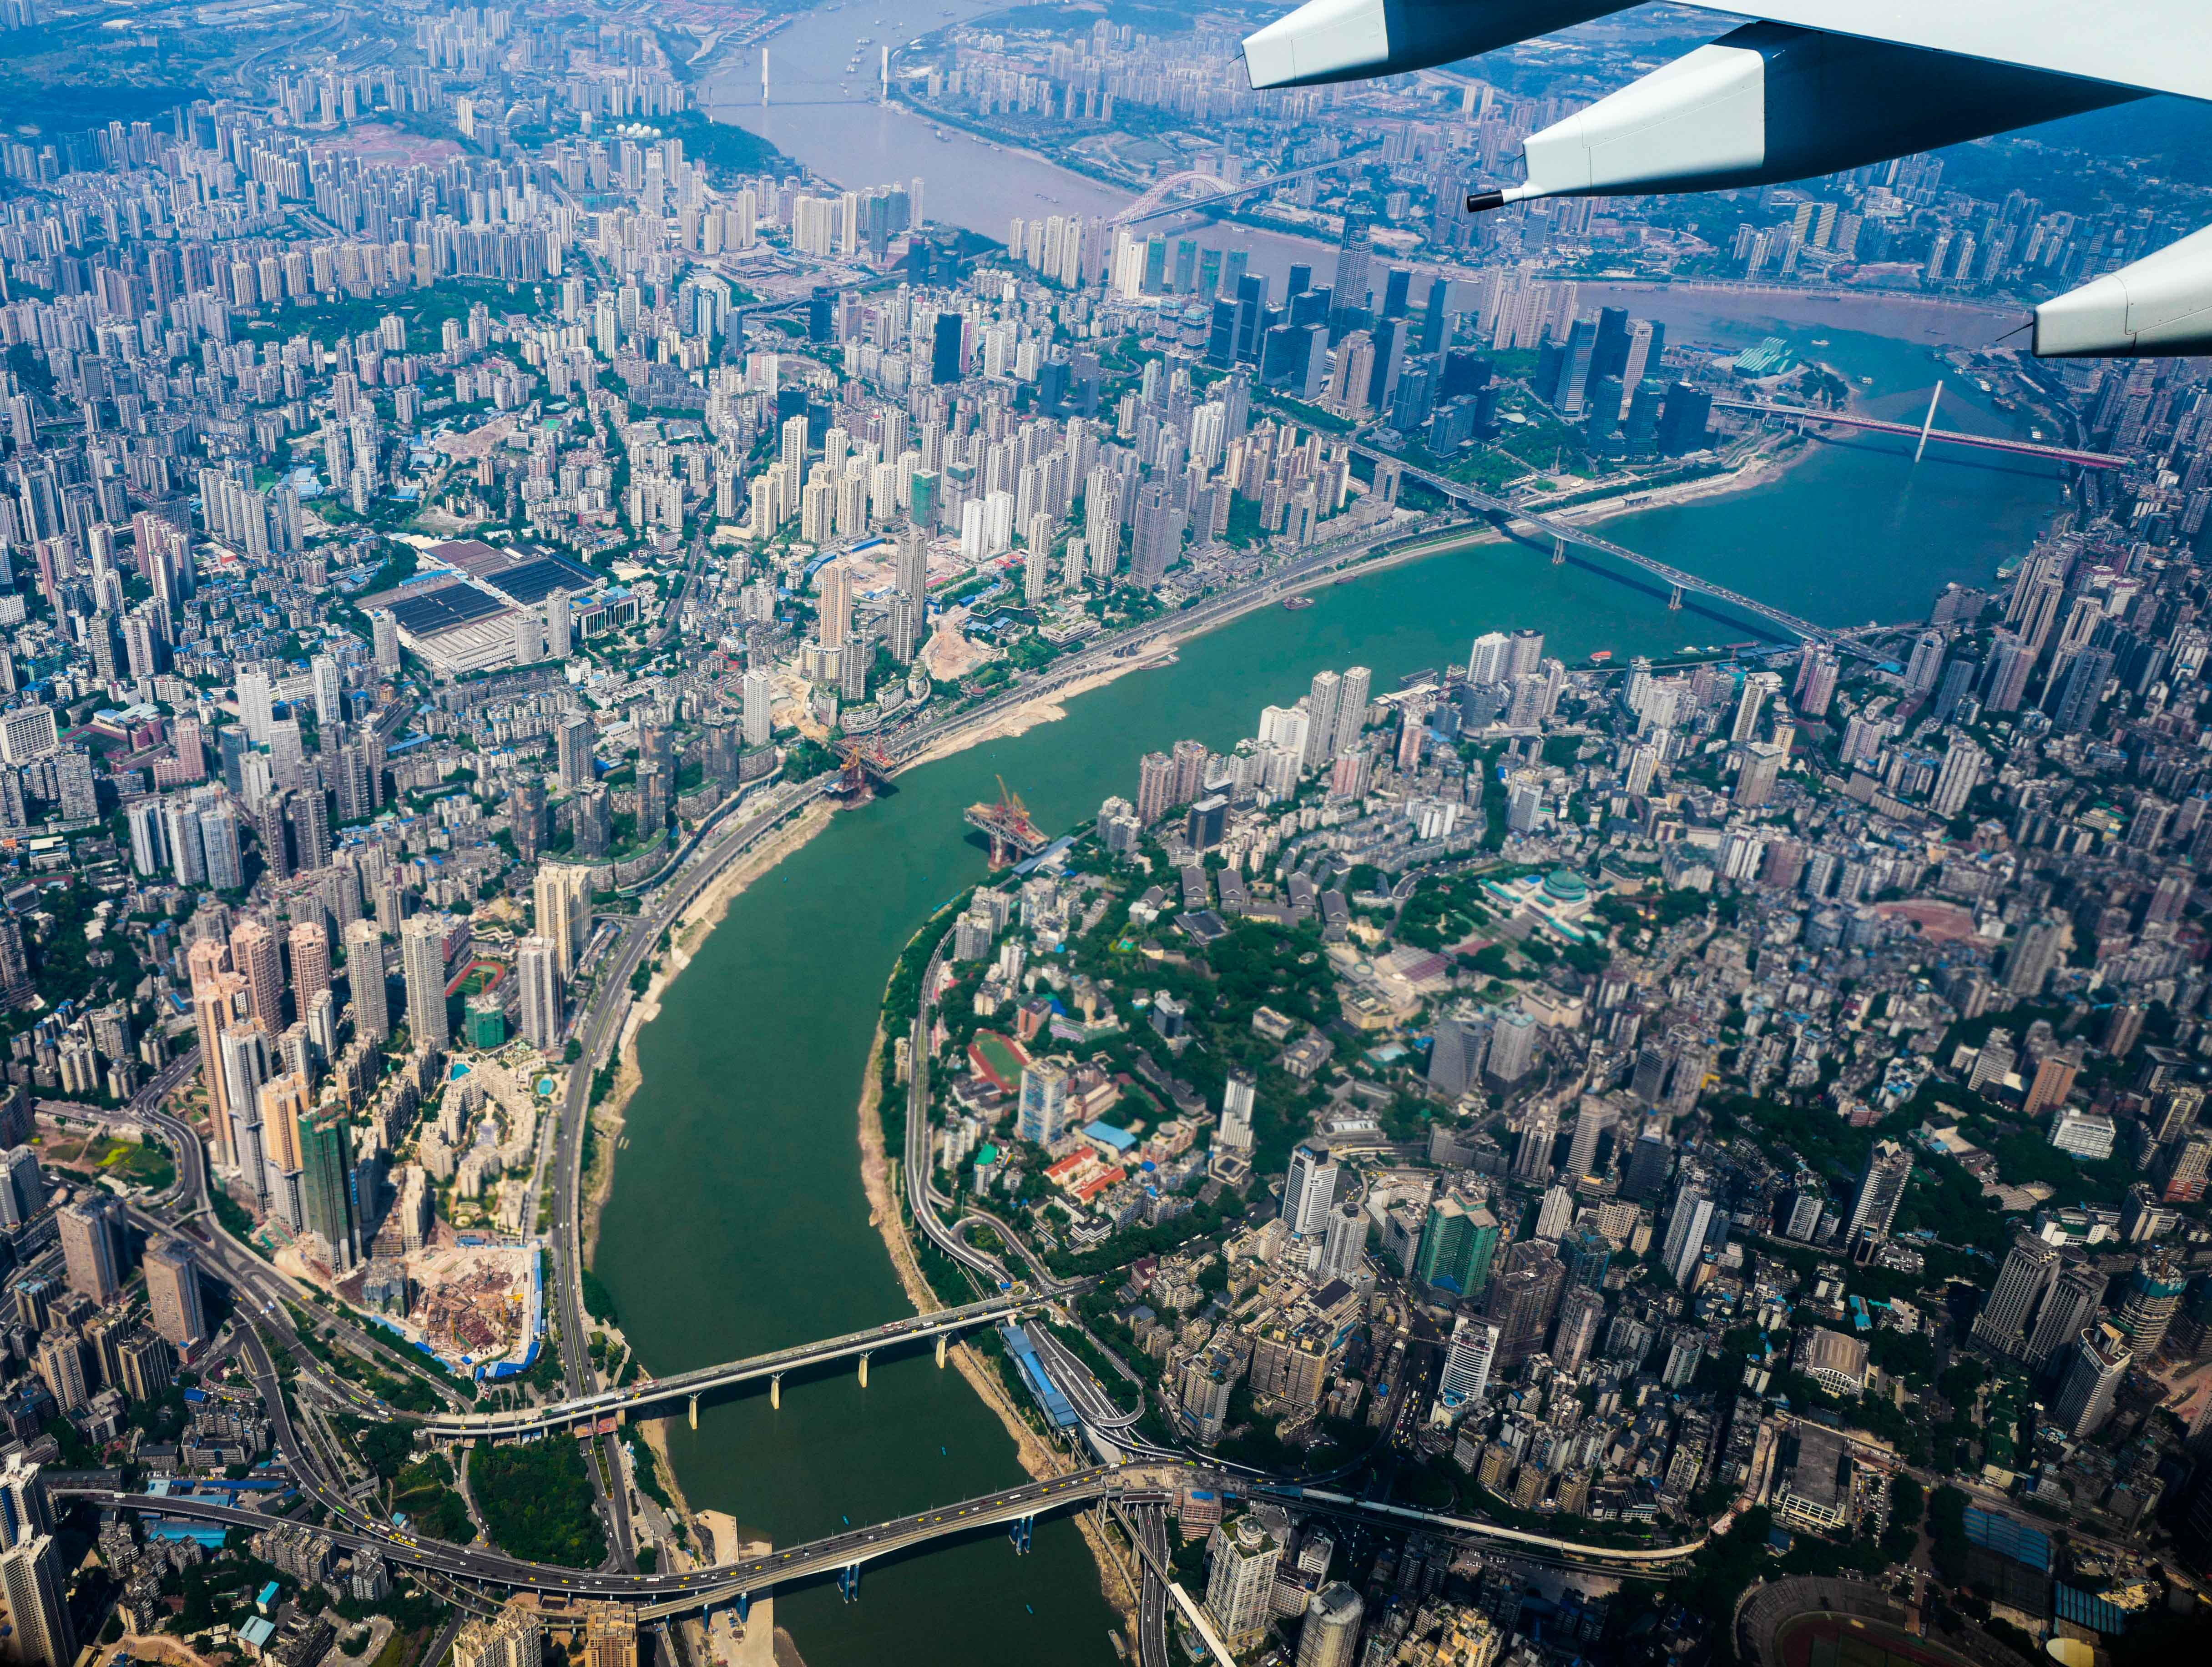 Chongqing reports trade growth with B&R countries